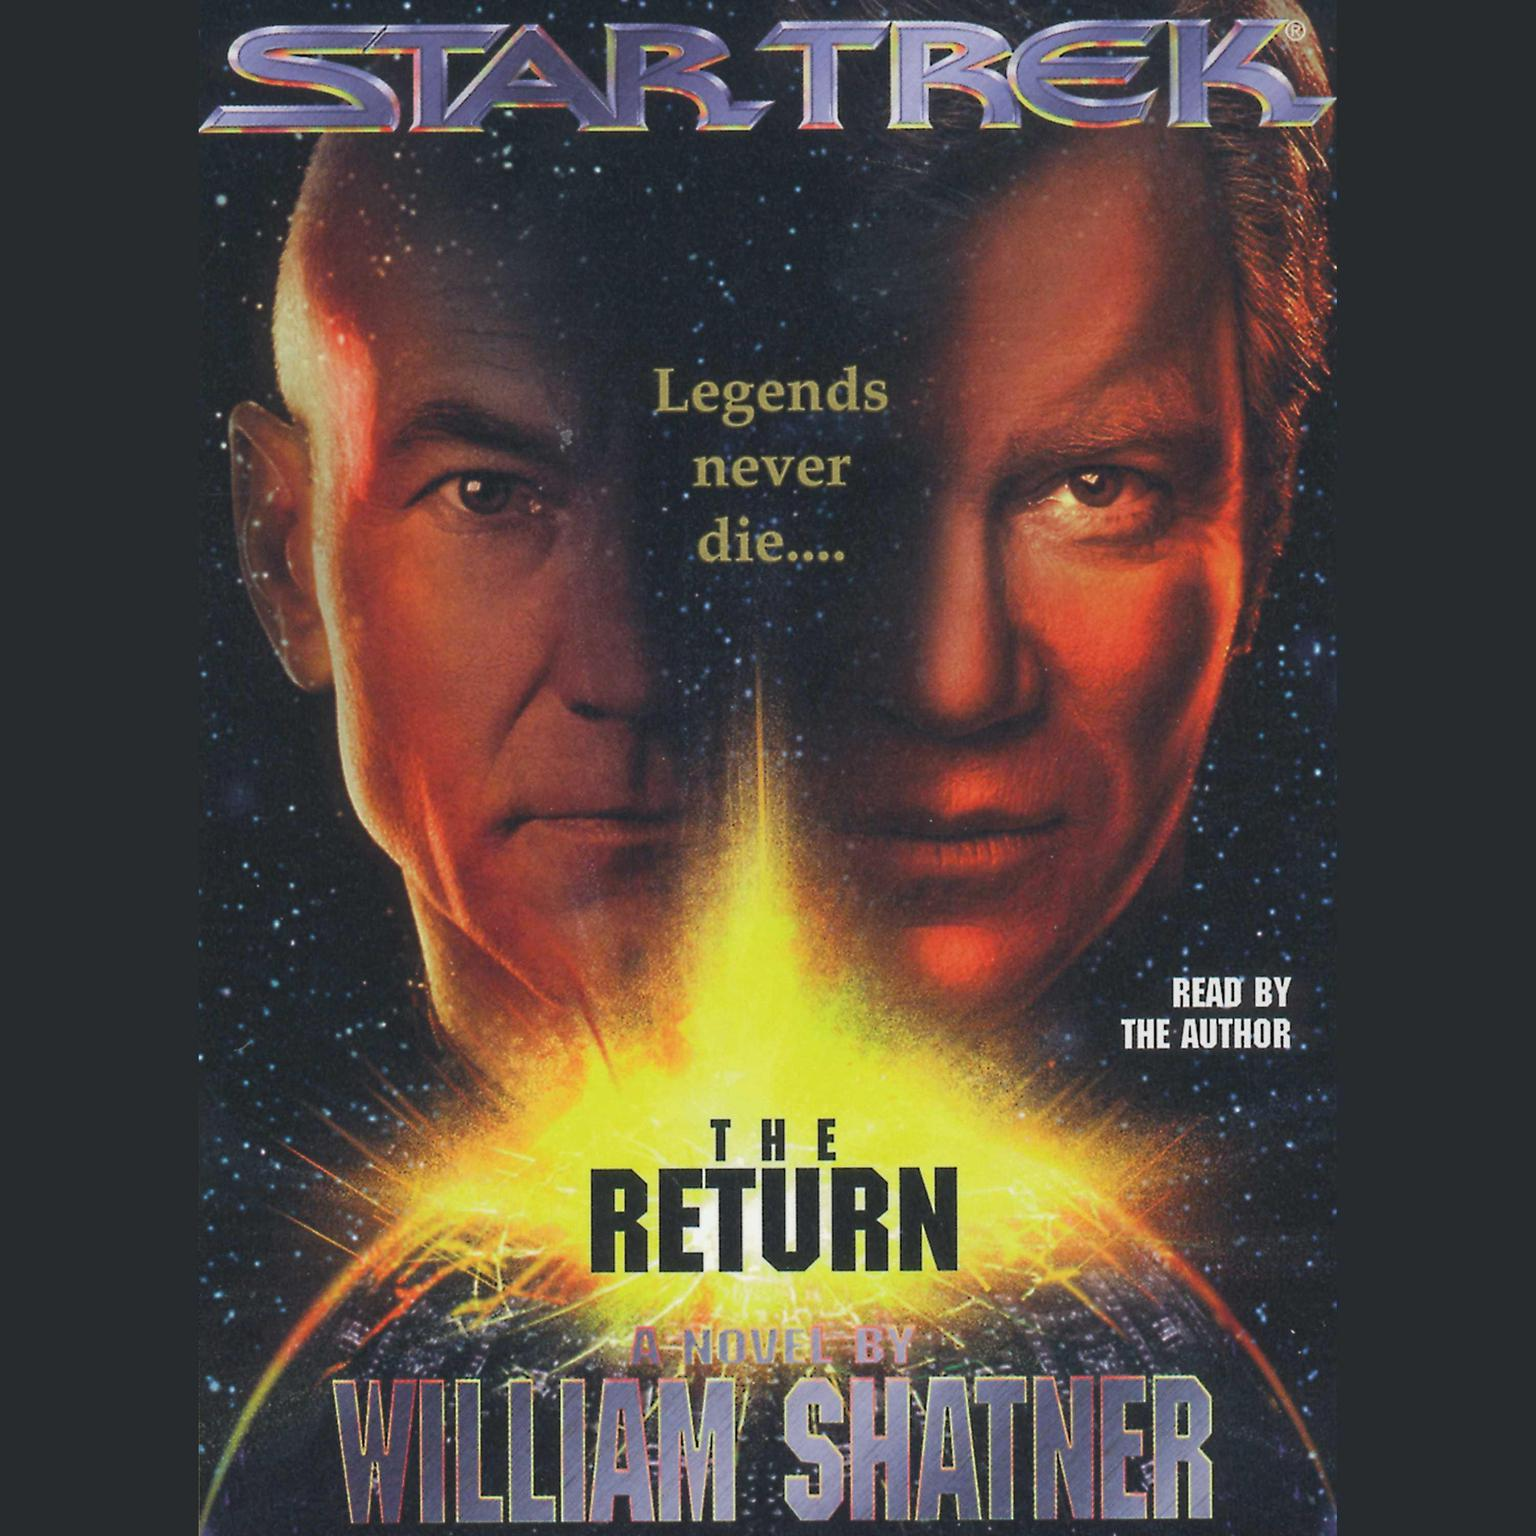 Printable The Star Trek:The Return Audiobook Cover Art